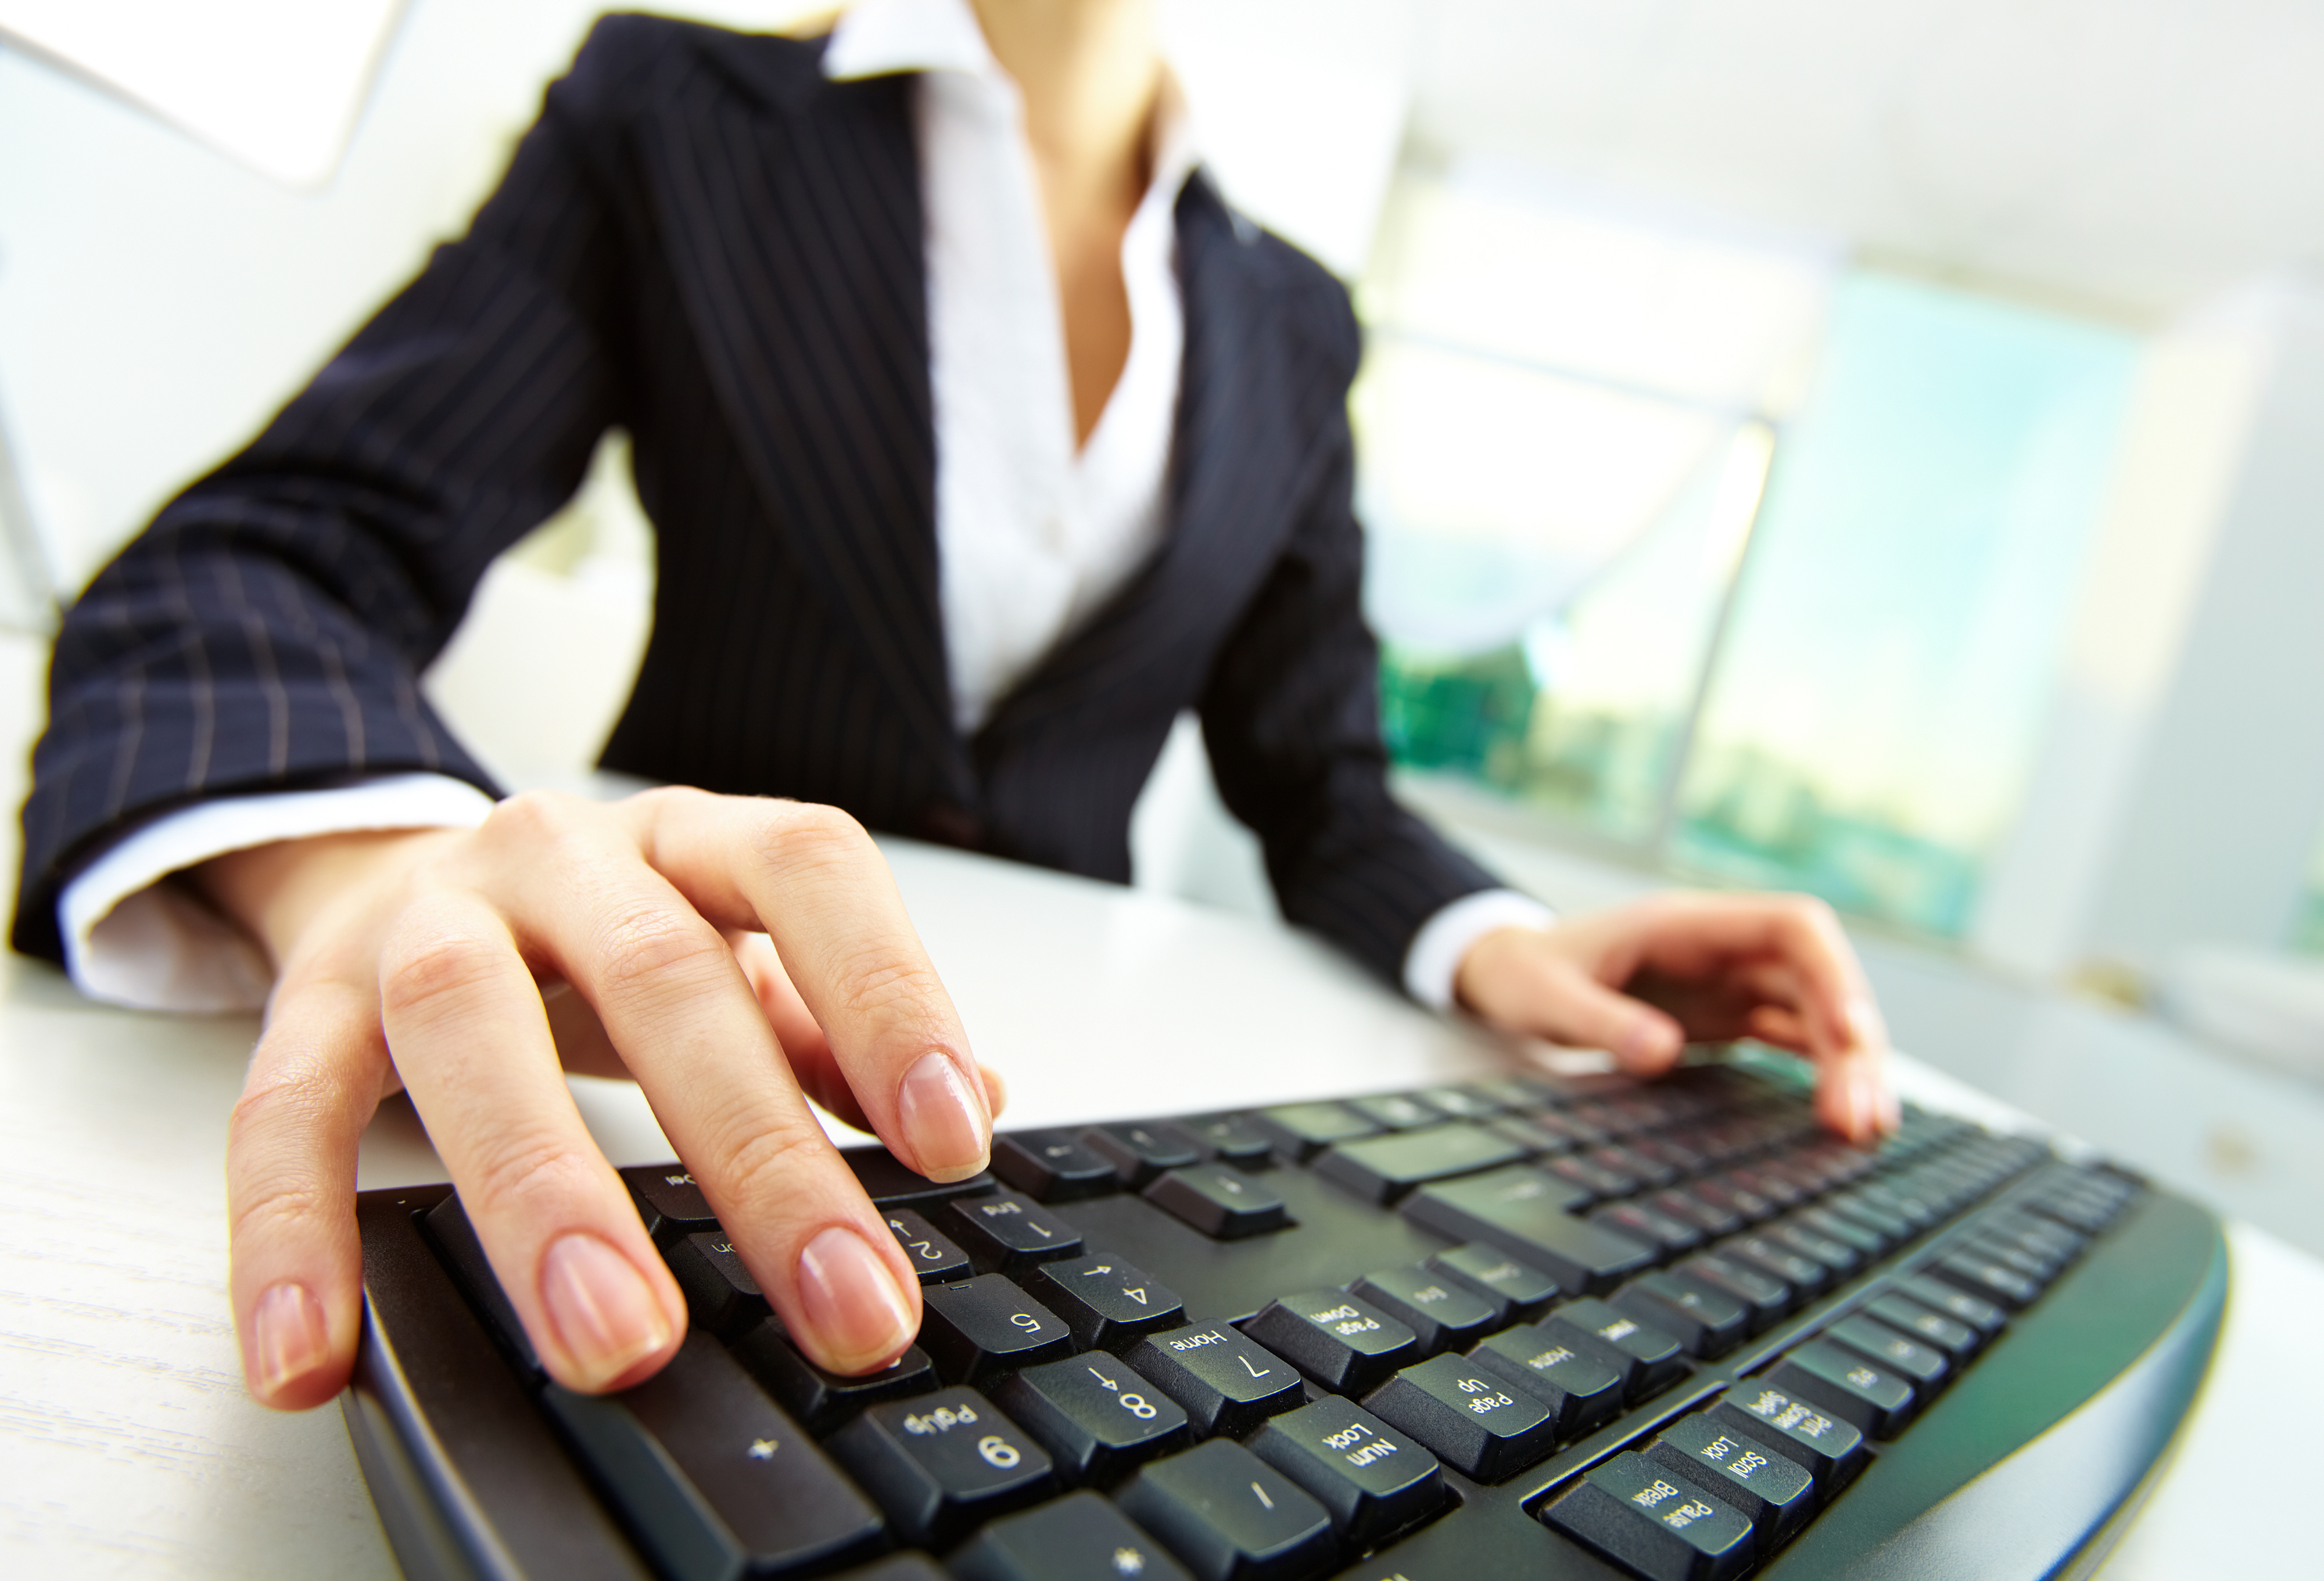 HD Office Work Wallpapers and Photos | HD Misc Wallpapers